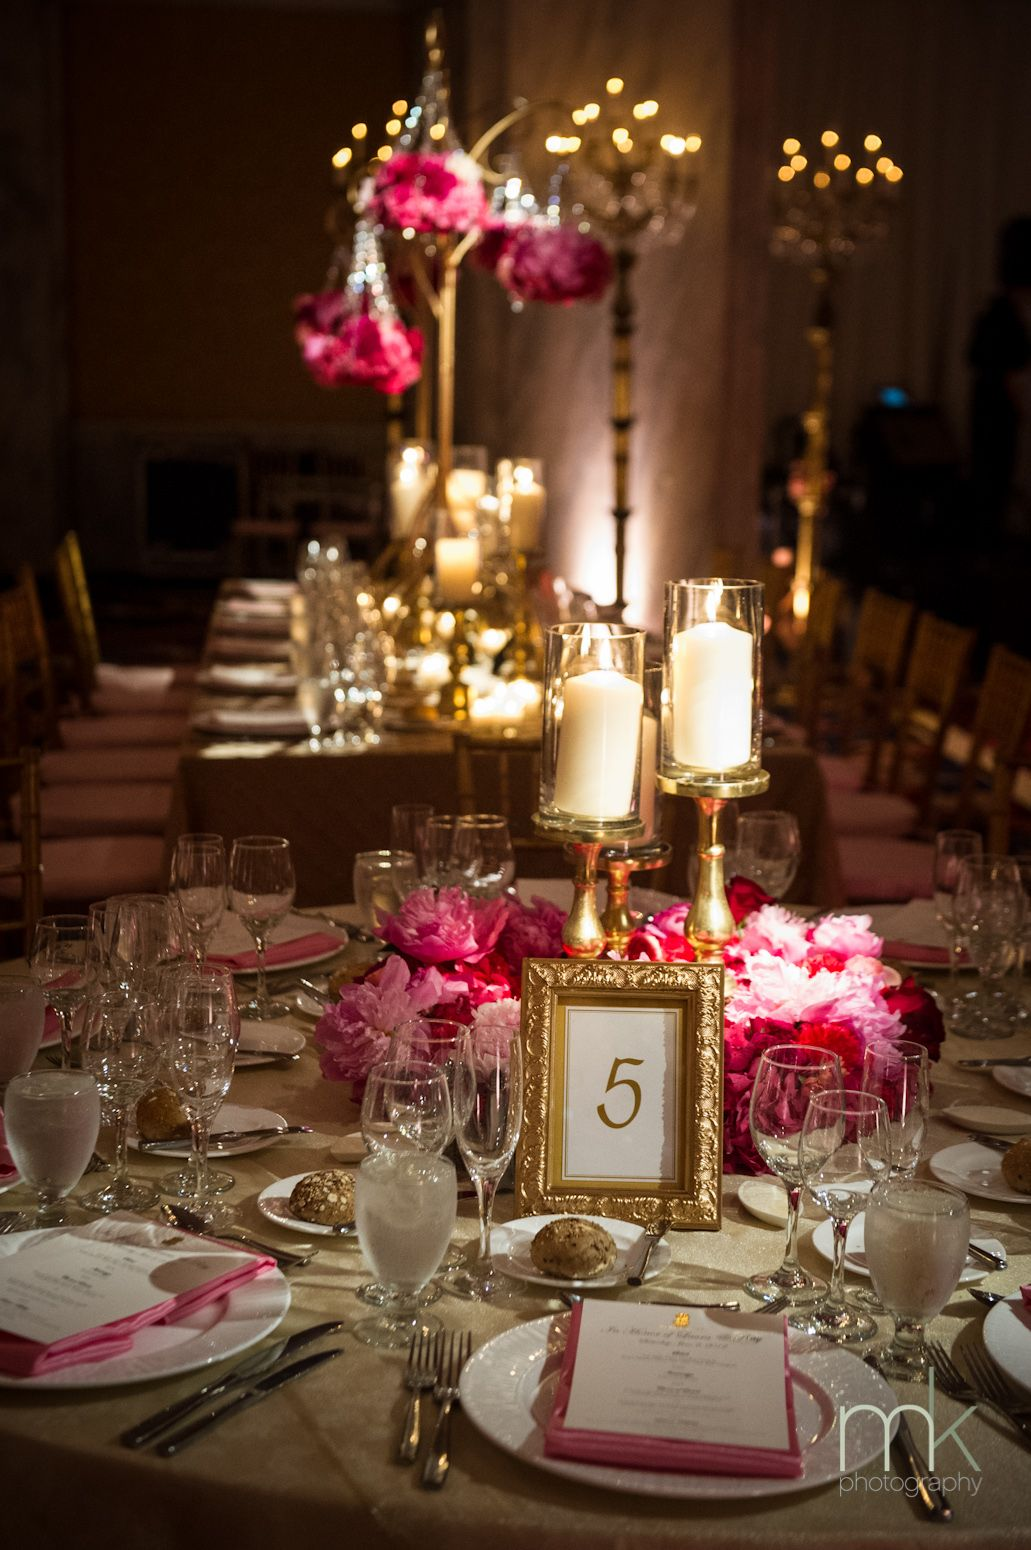 Beautiful blooms ritz carlton philadelphia pink and gold